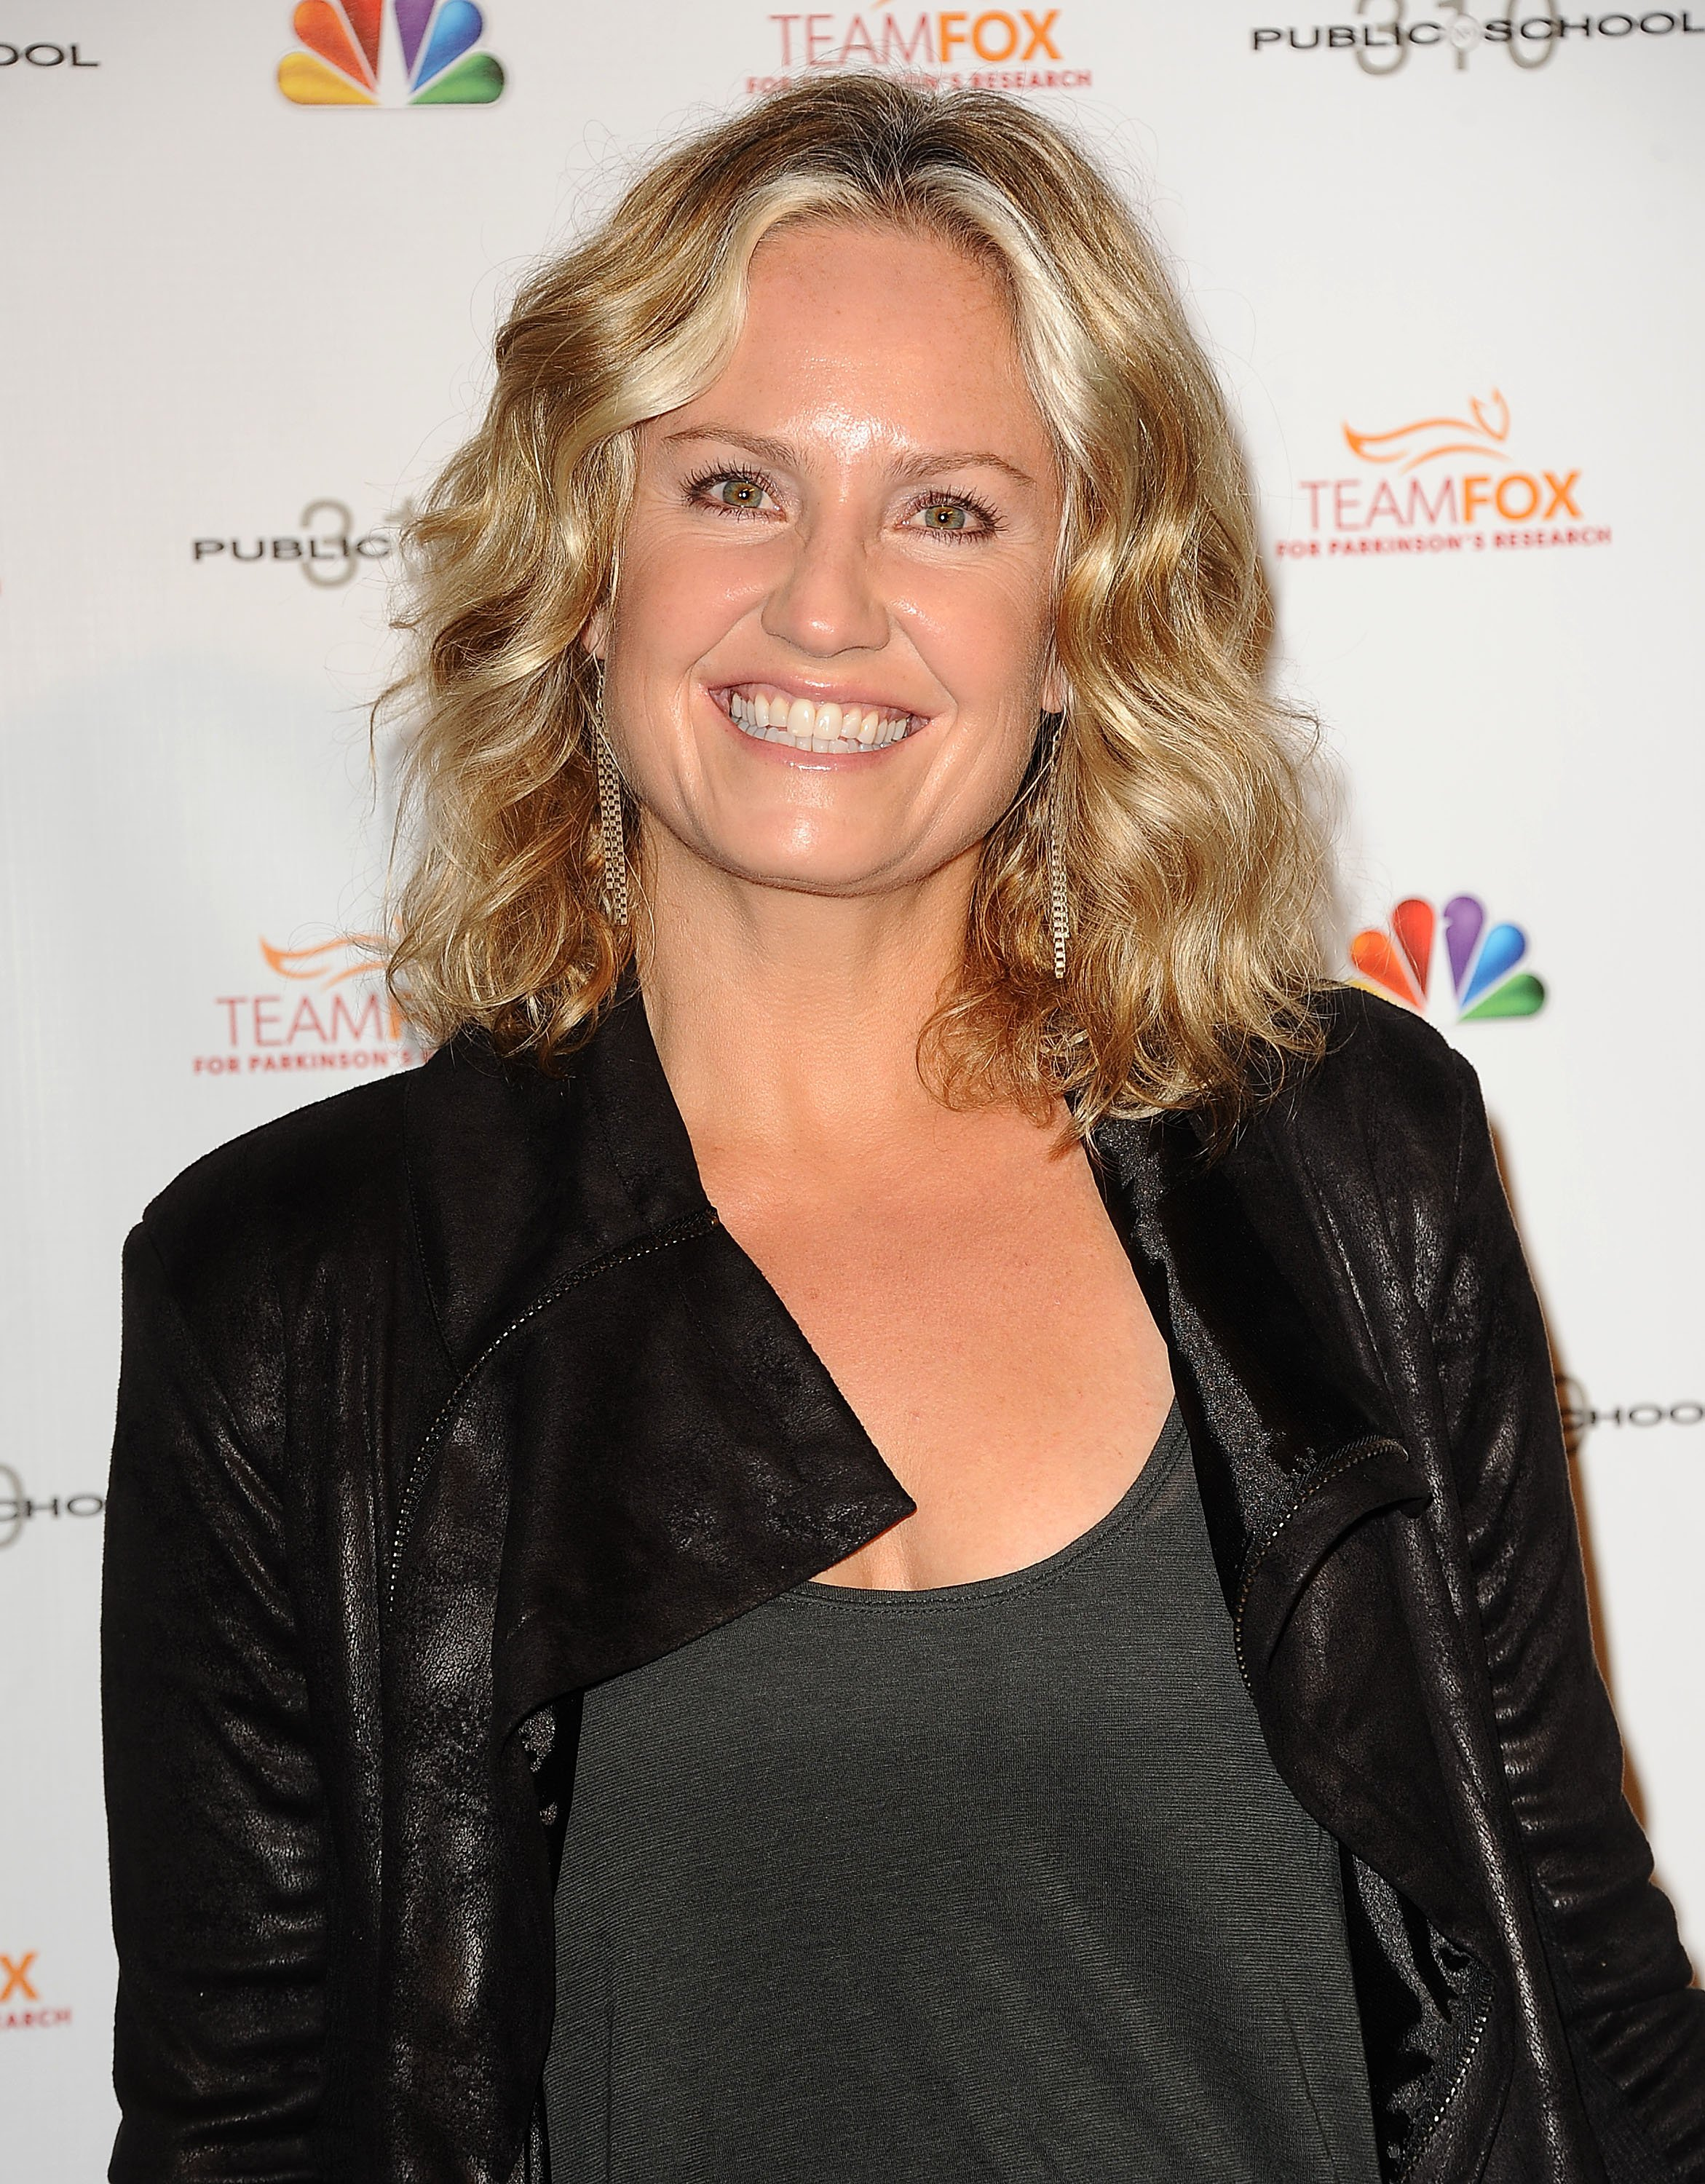 Sherry Stringfield at Raising The Bar To End Parkinson's on December 5, 2012 in Culver City, California. | Source: Getty Images